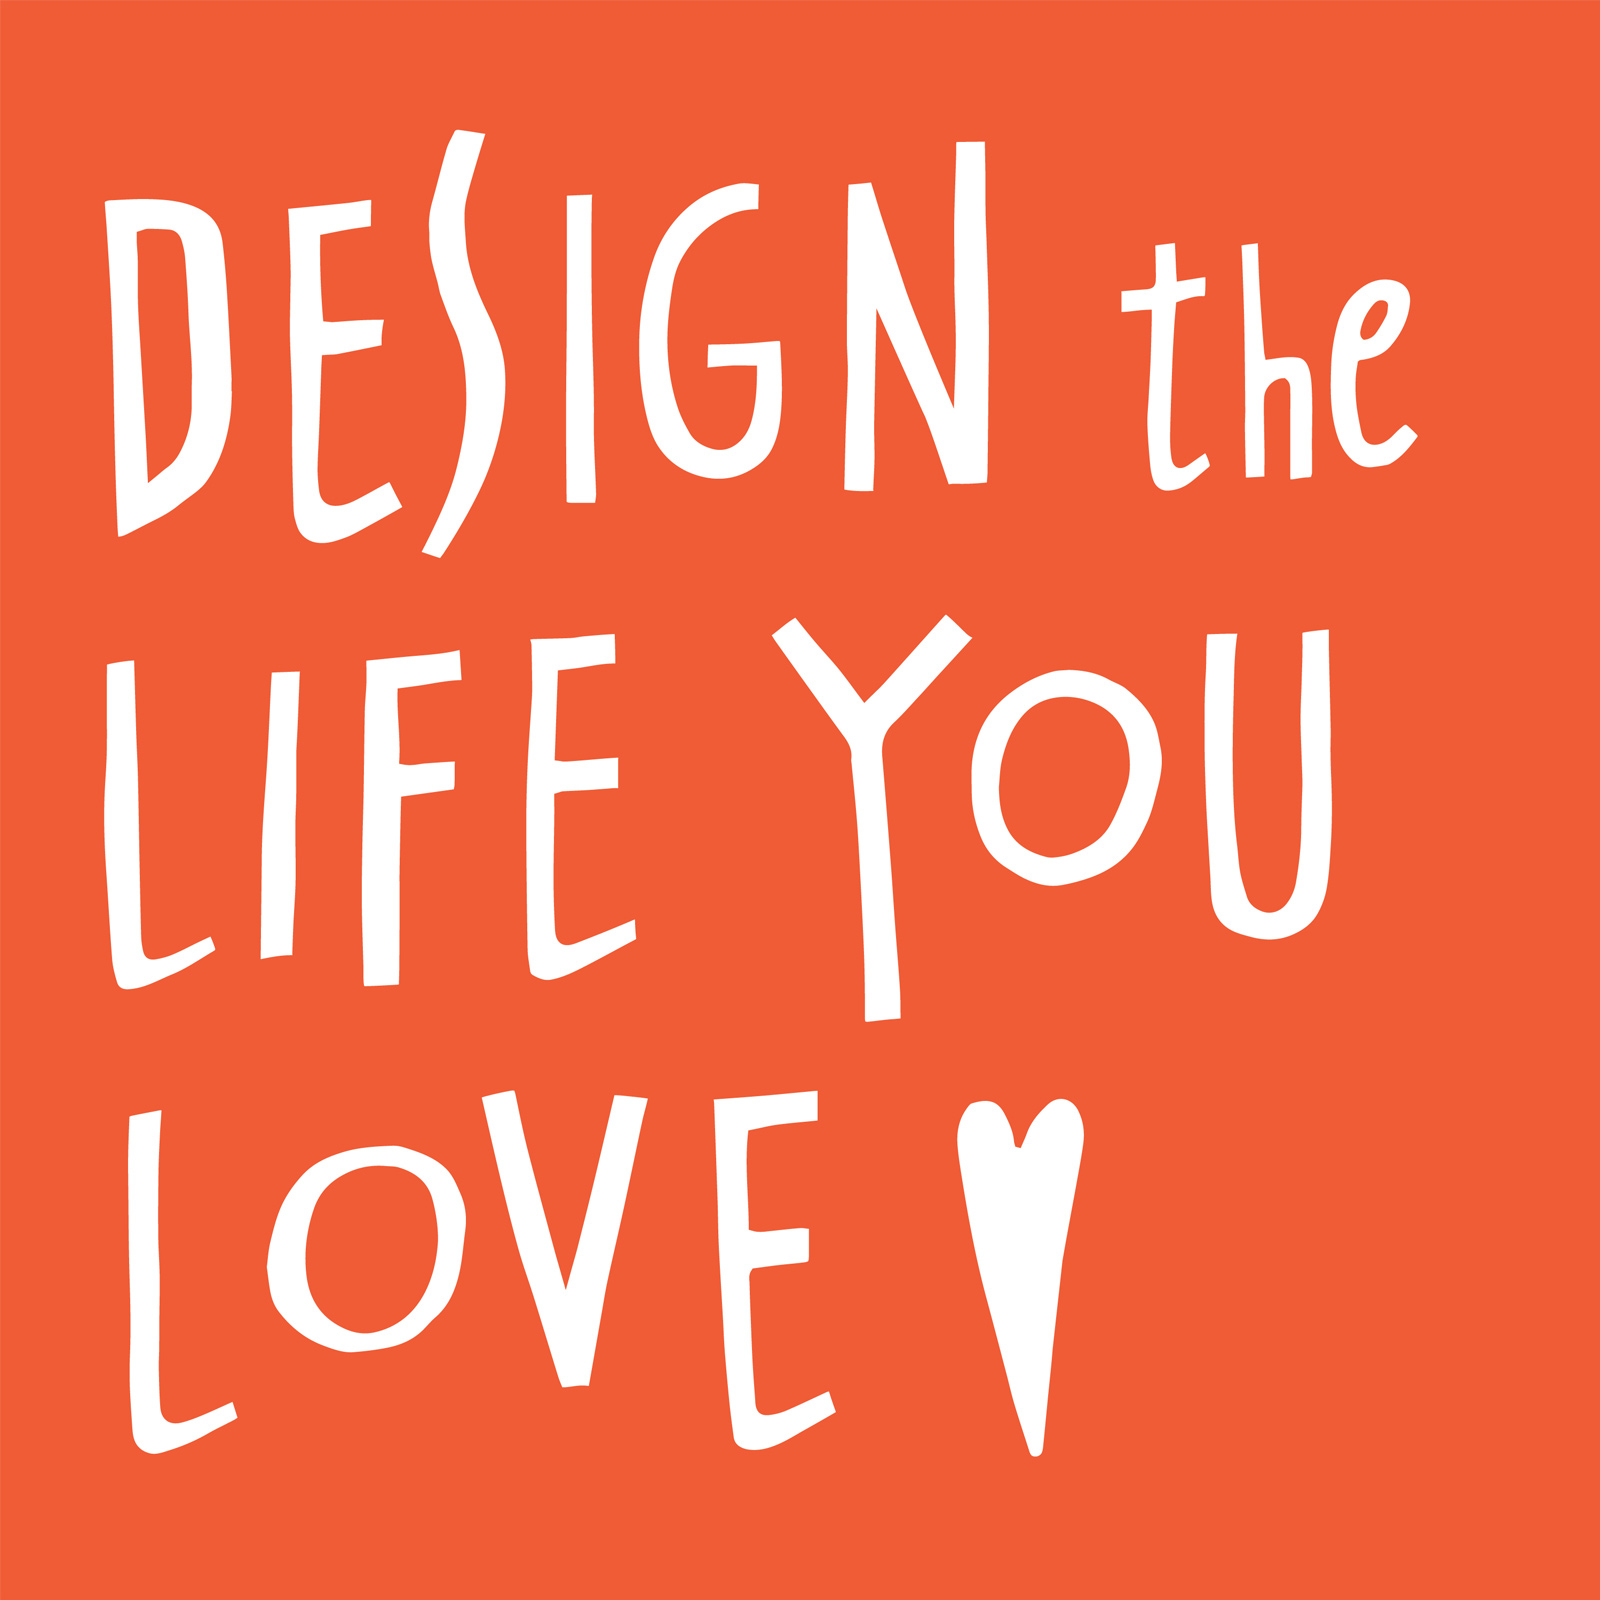 Design The Life You Love with Ayse Birsel